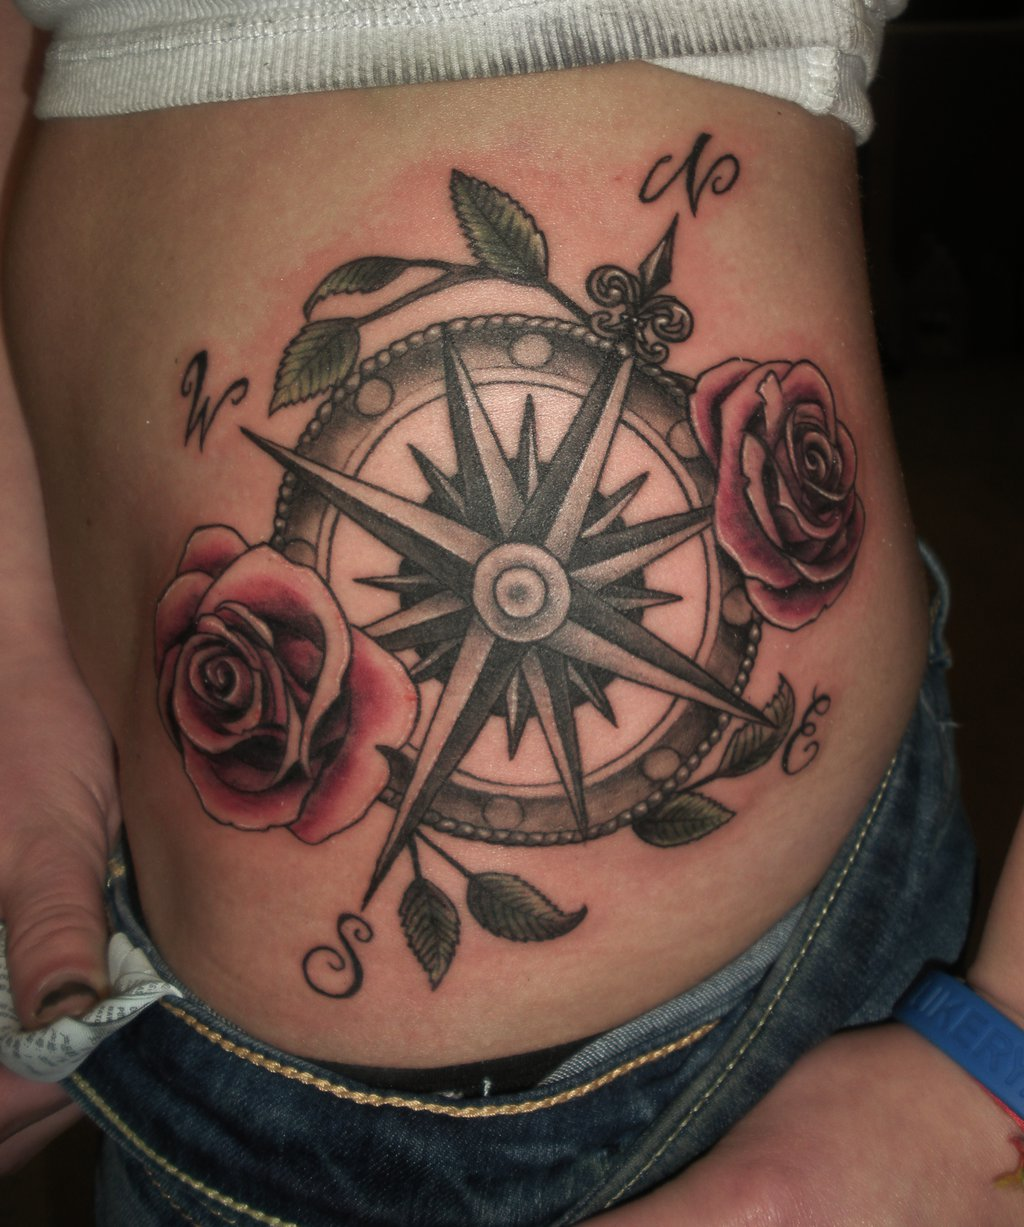 compass_rose_tattoo_by_pushininktattoo-d6jctxe